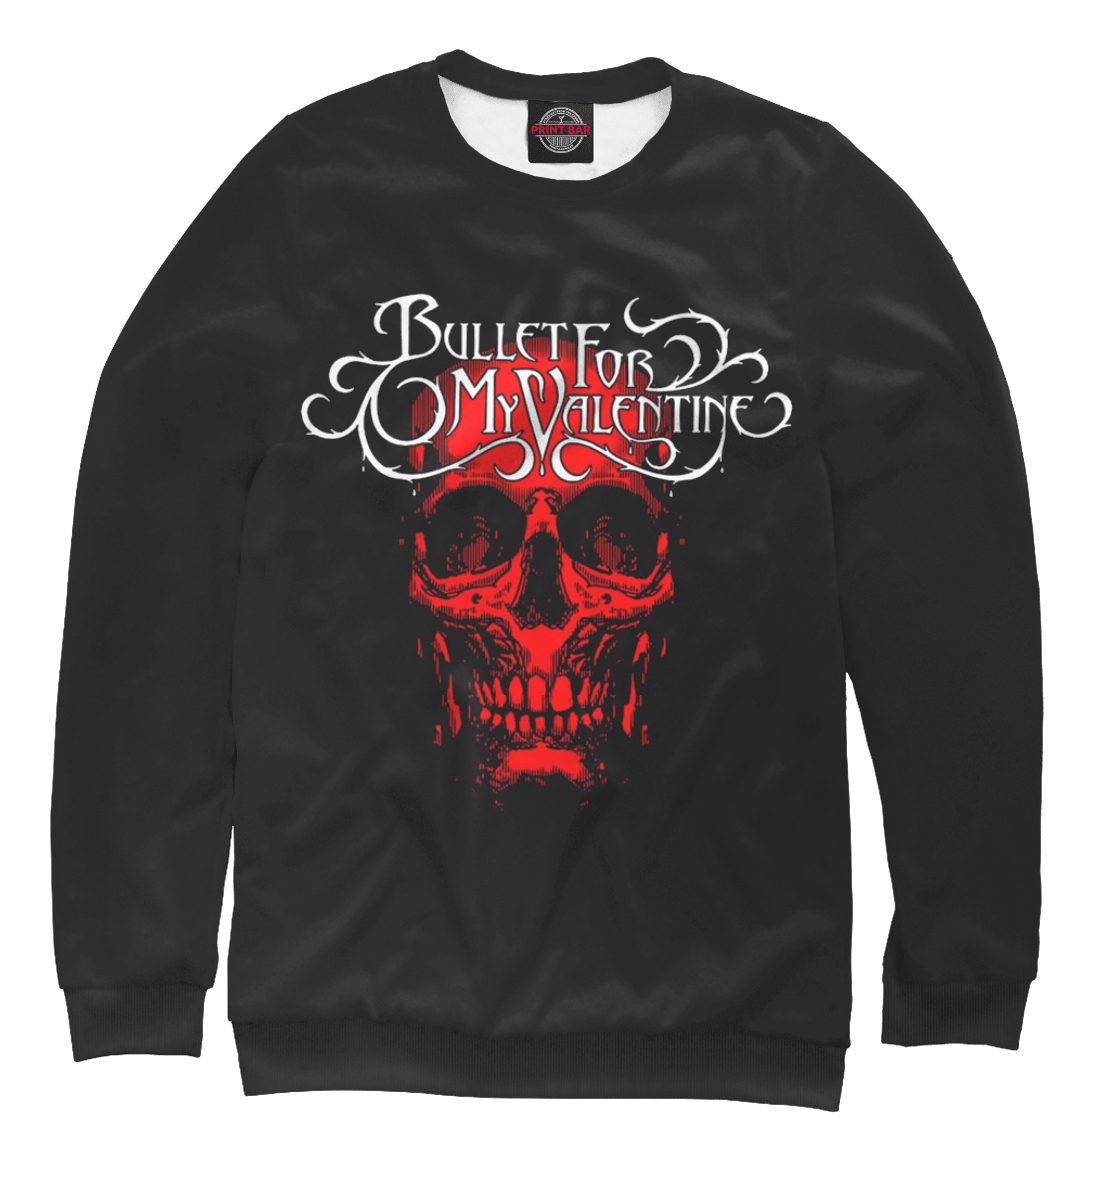 Купить Bullet for my Valentine, Printbar, Свитшоты, BMV-637188-swi-1